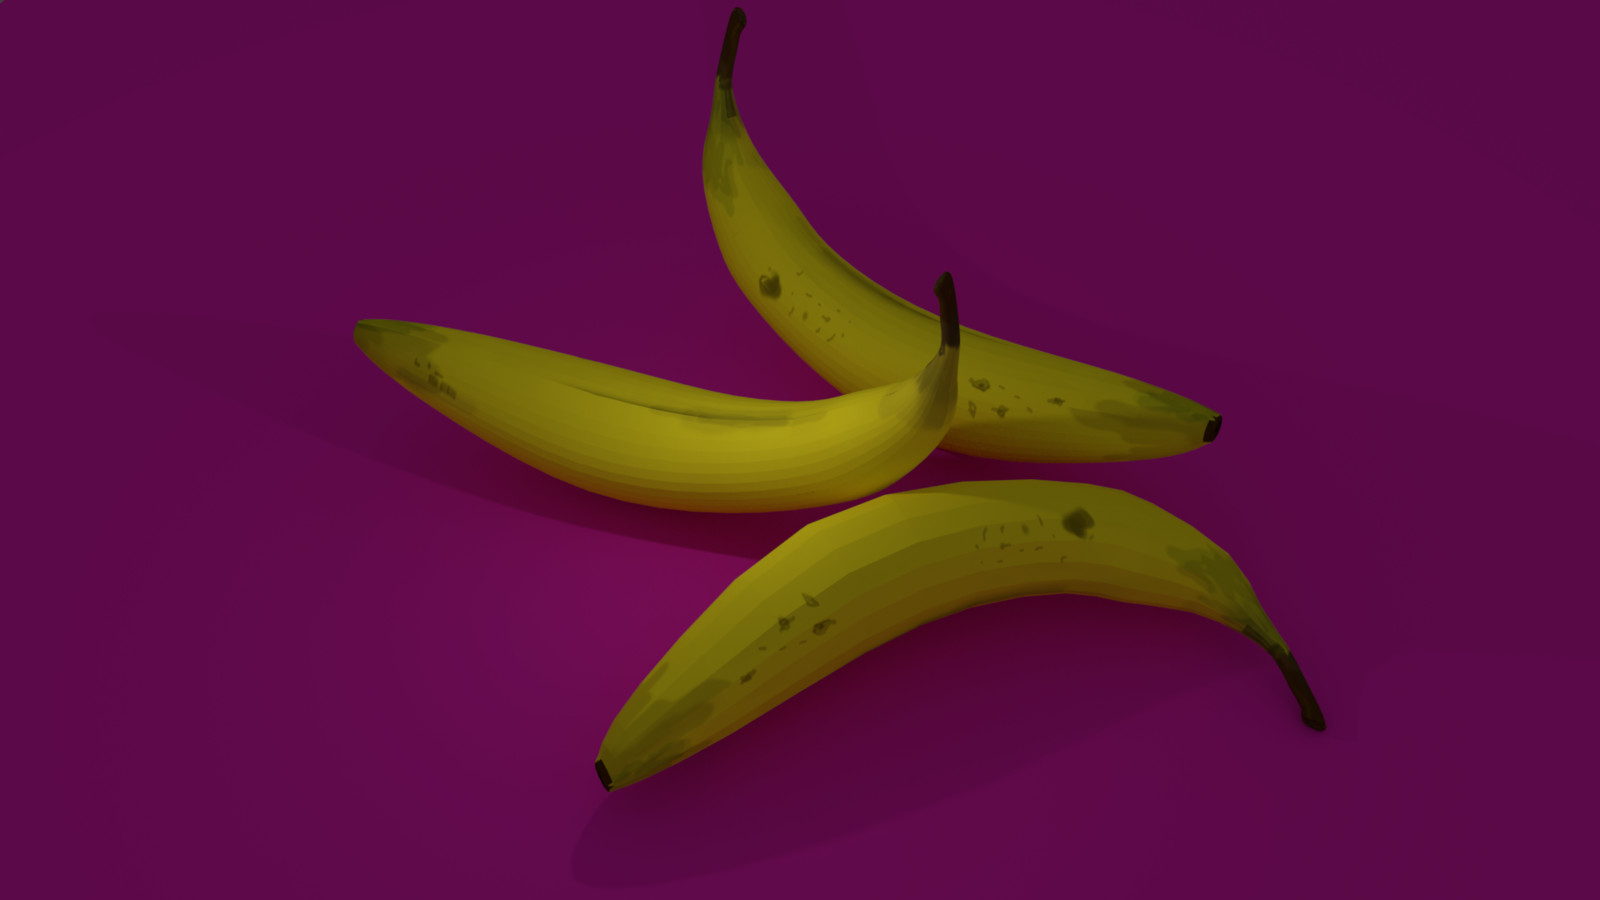 3d Hand Painted Bananas